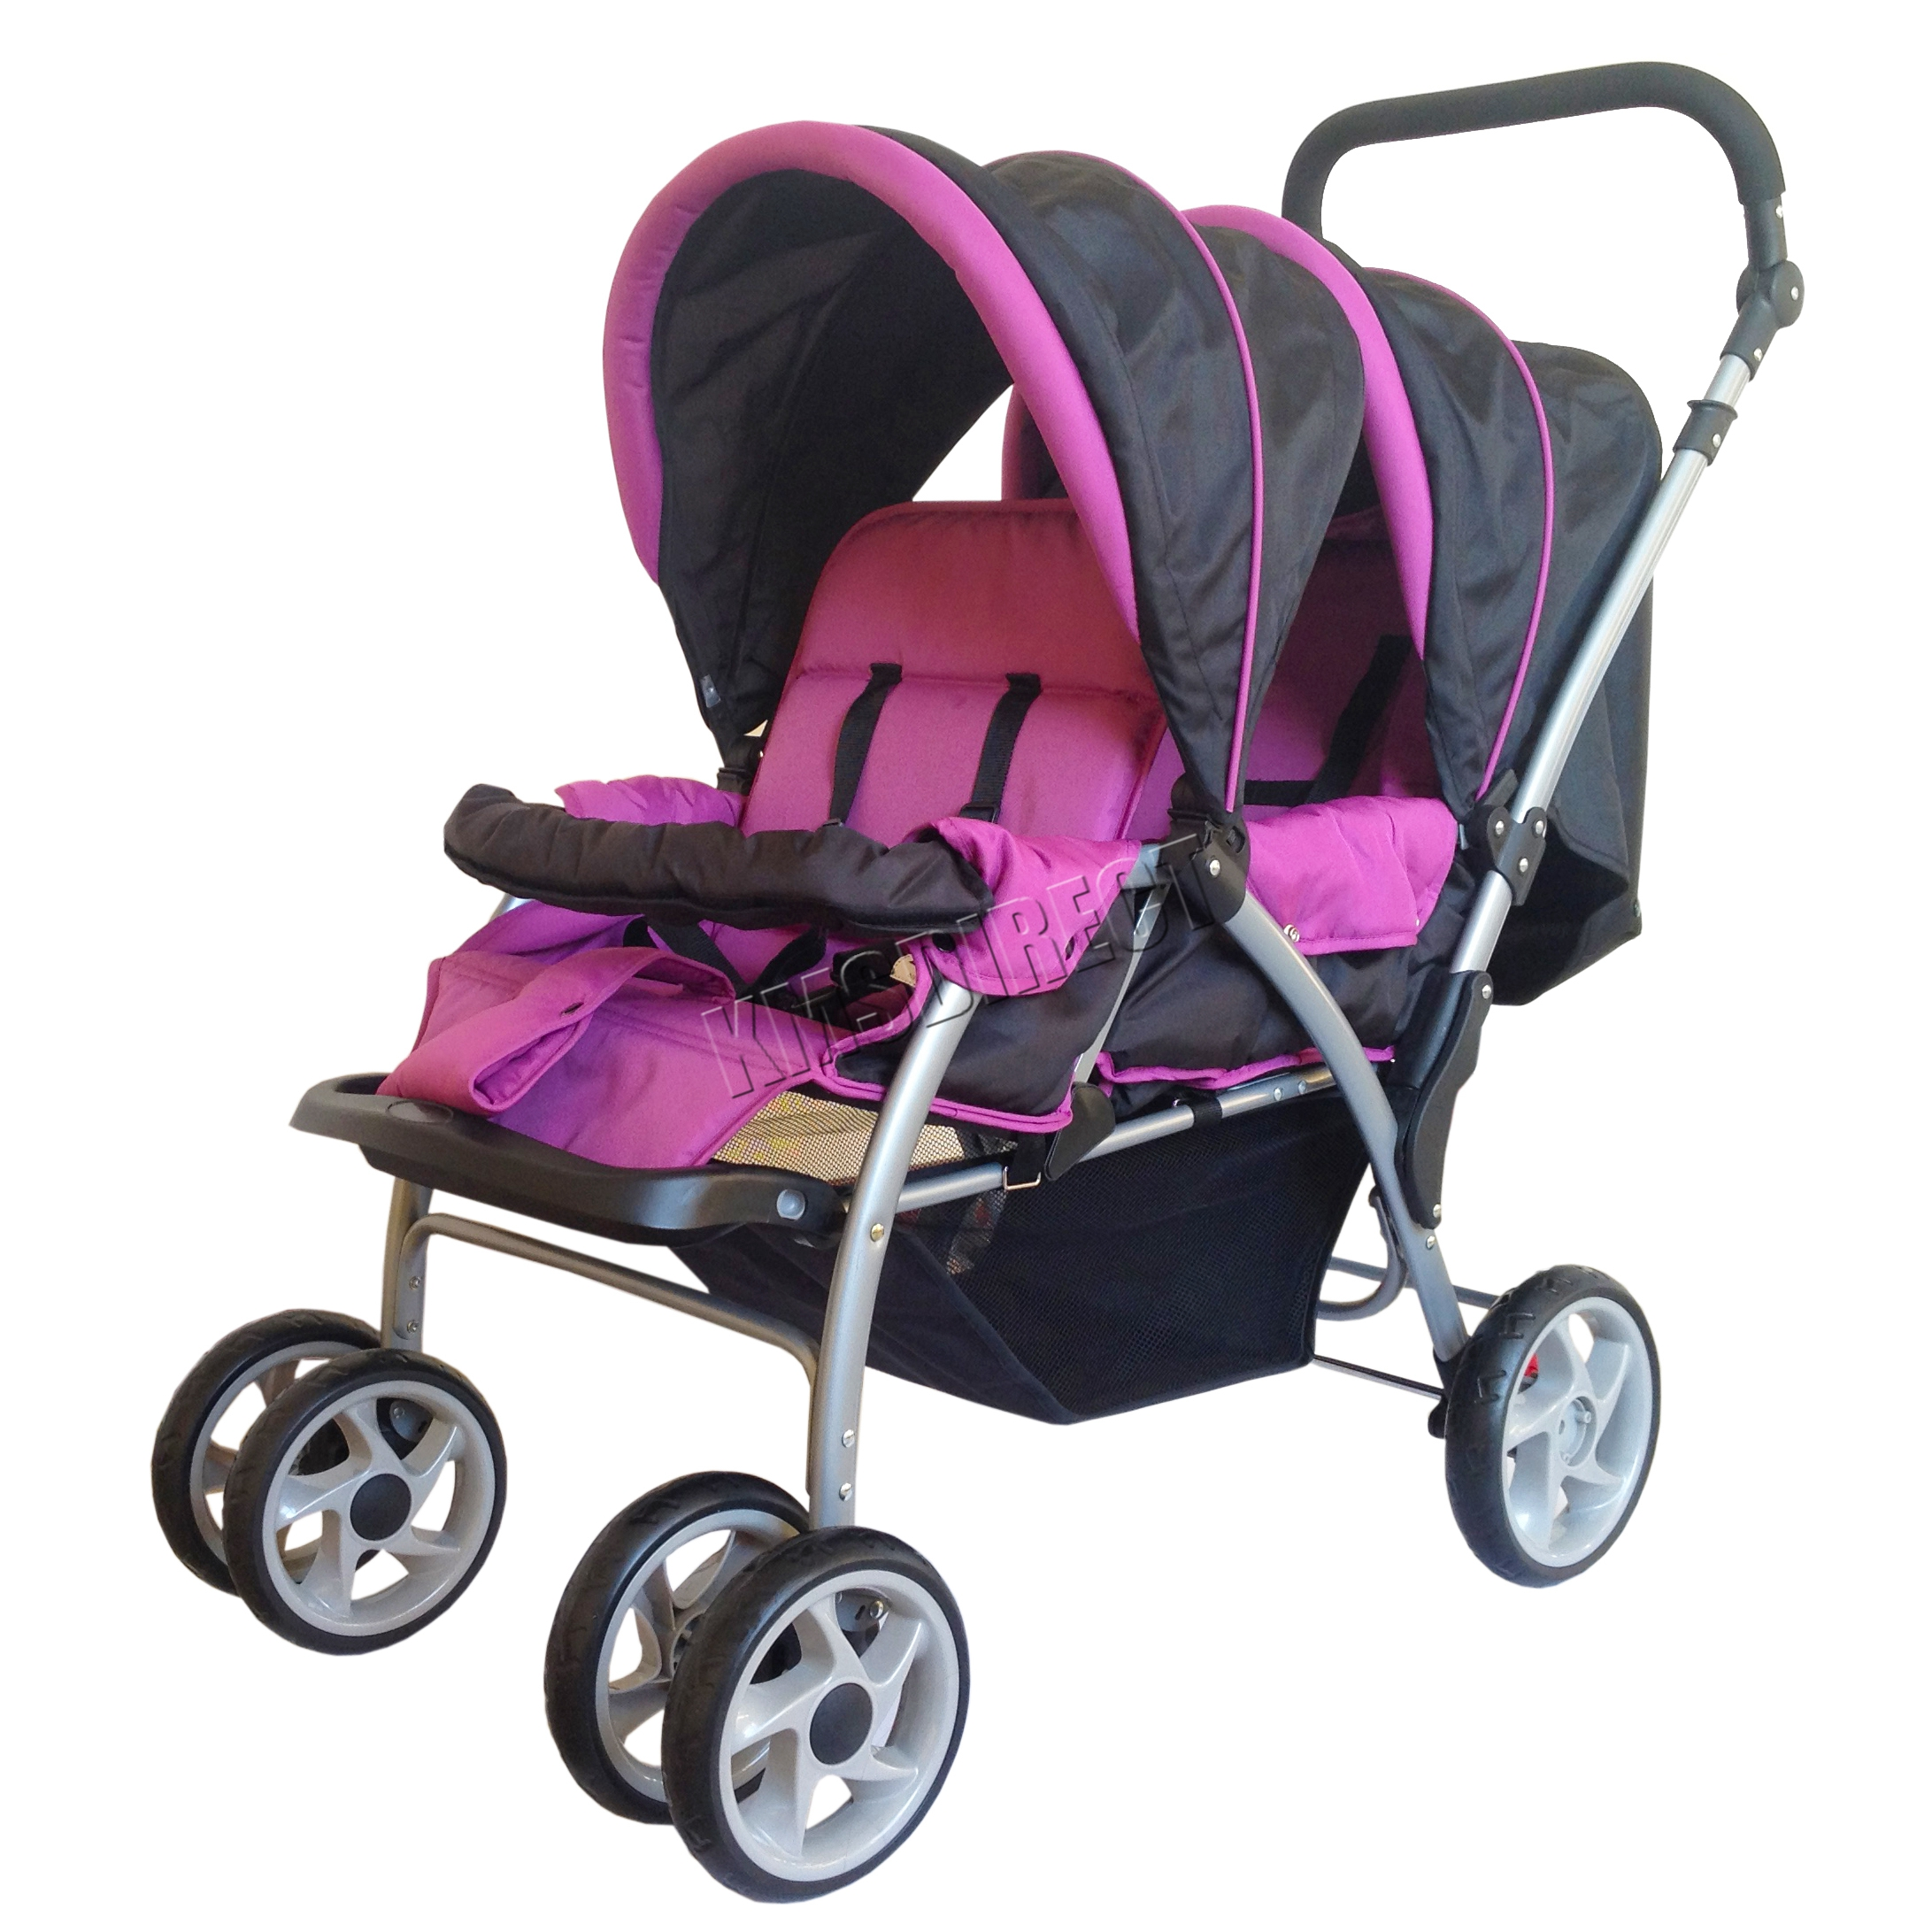 foxhunter baby toddler tandem double stroller twin pushchair pram buggy purple ebay. Black Bedroom Furniture Sets. Home Design Ideas